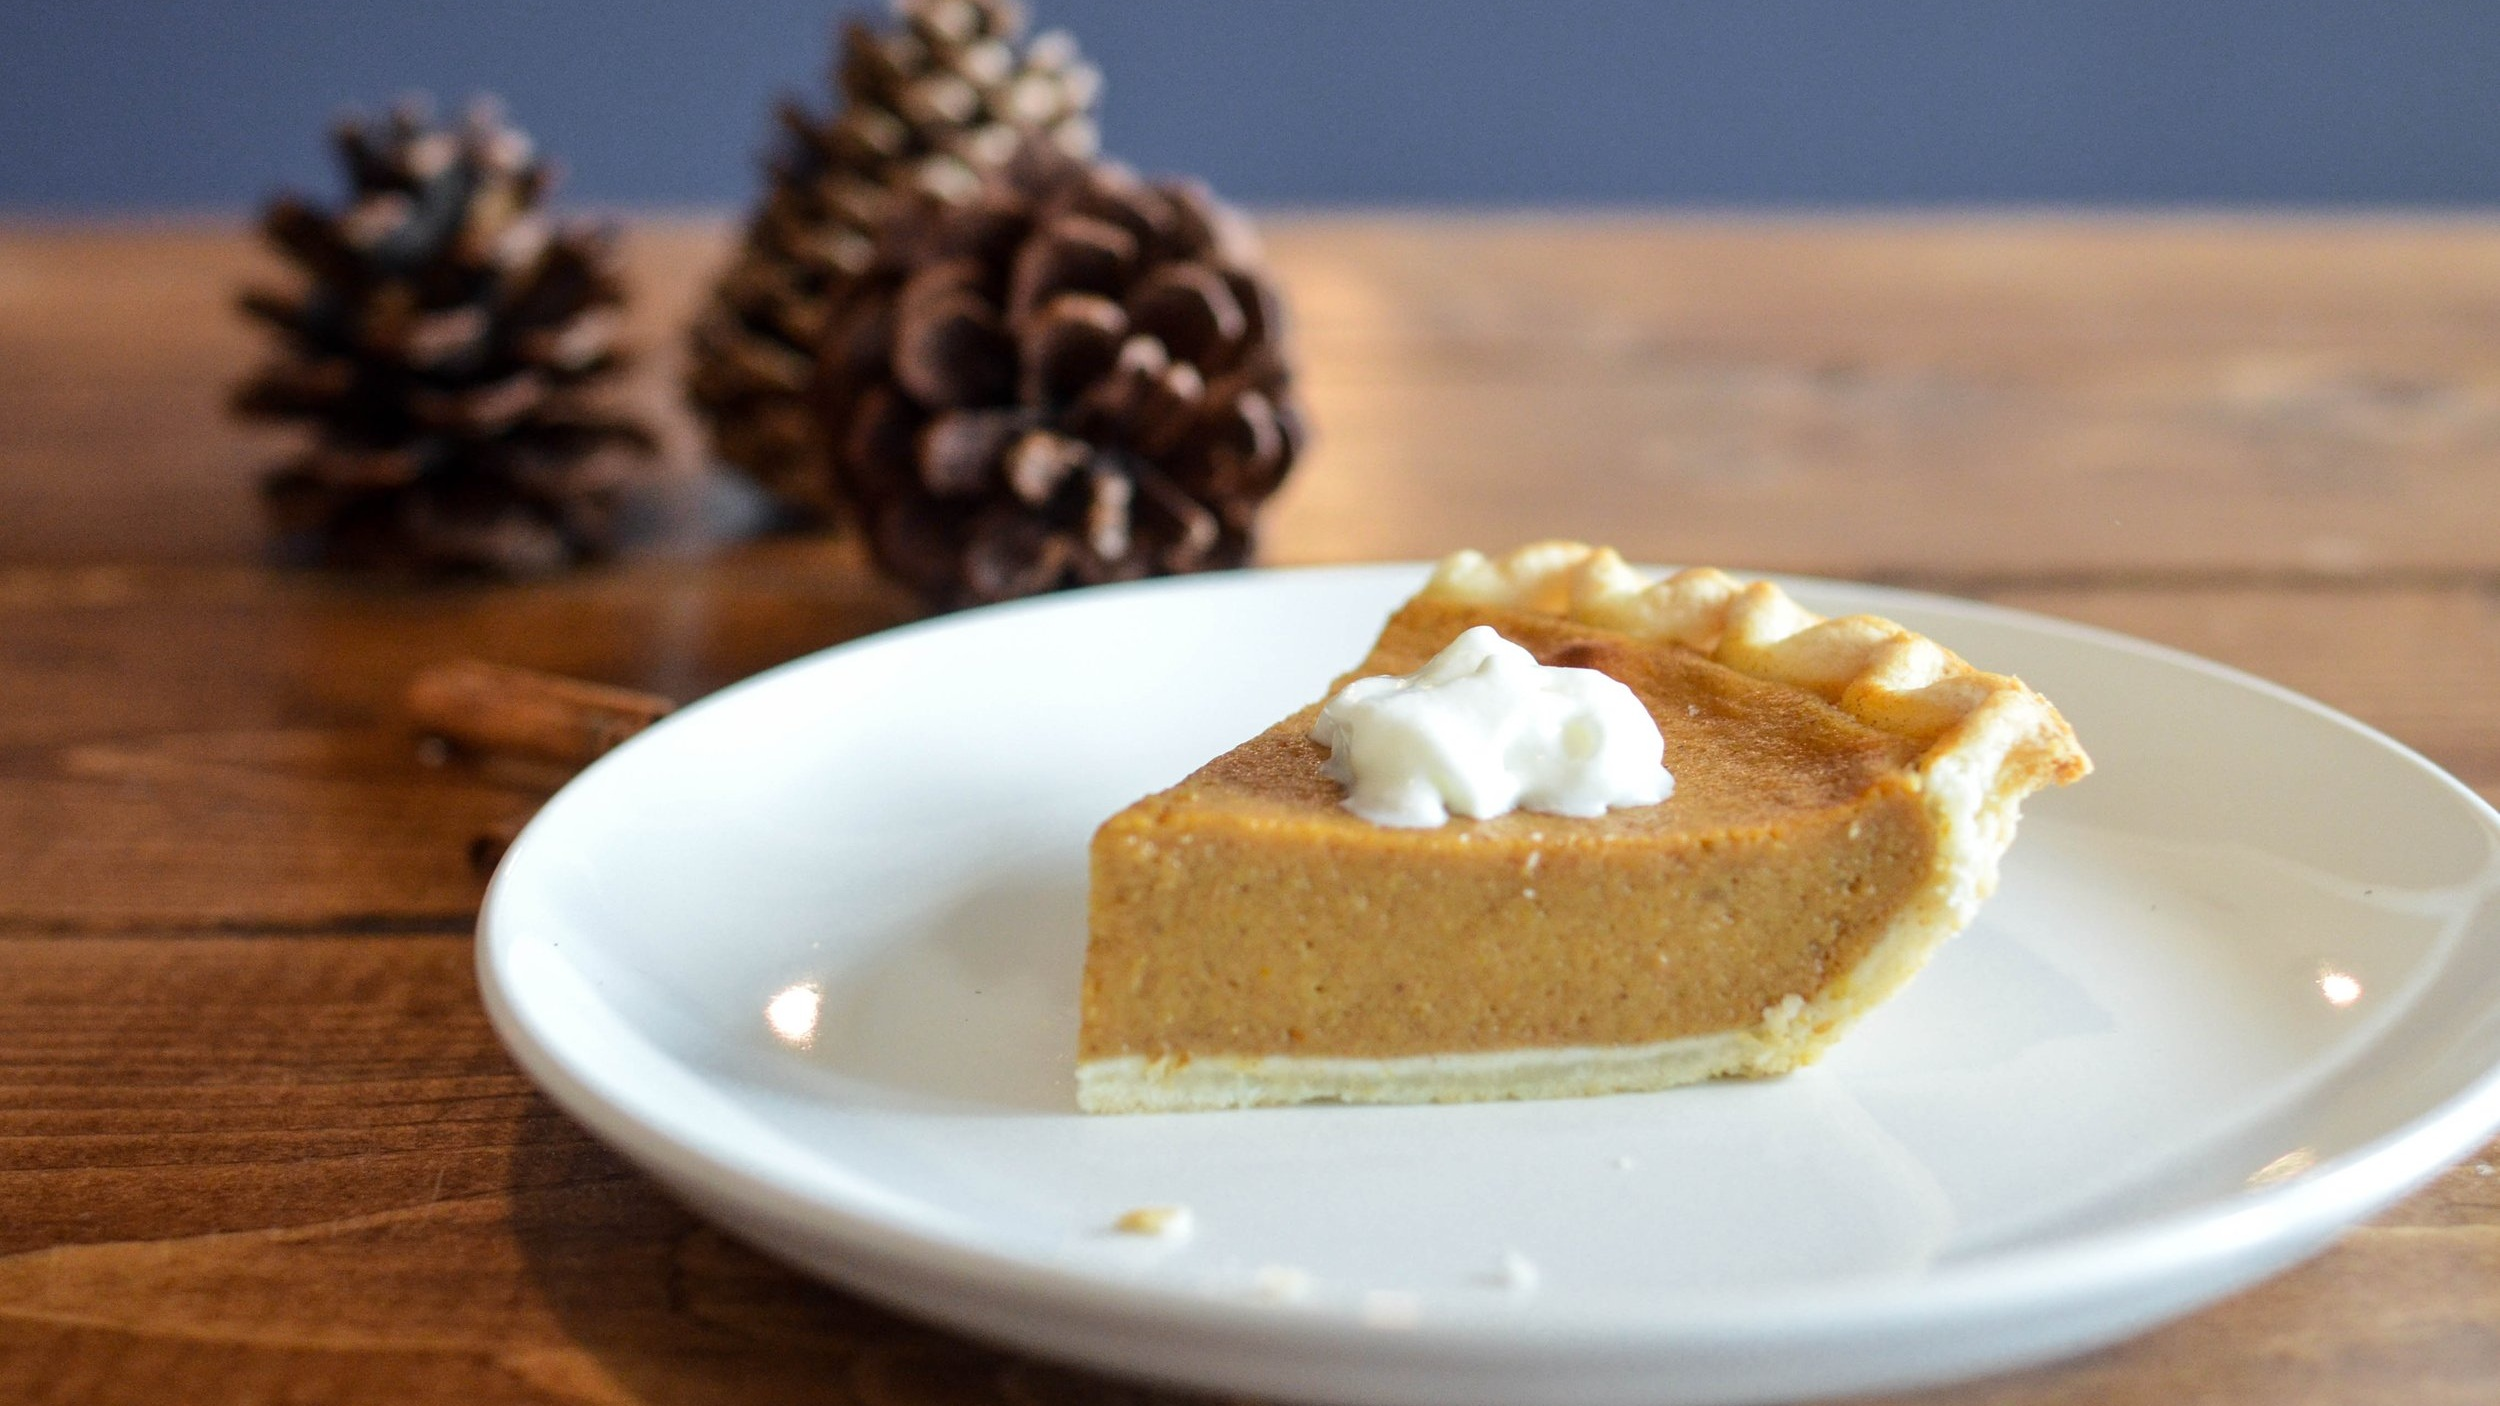 Acorns next to White plate with slice of pumpkin pie on wooden table